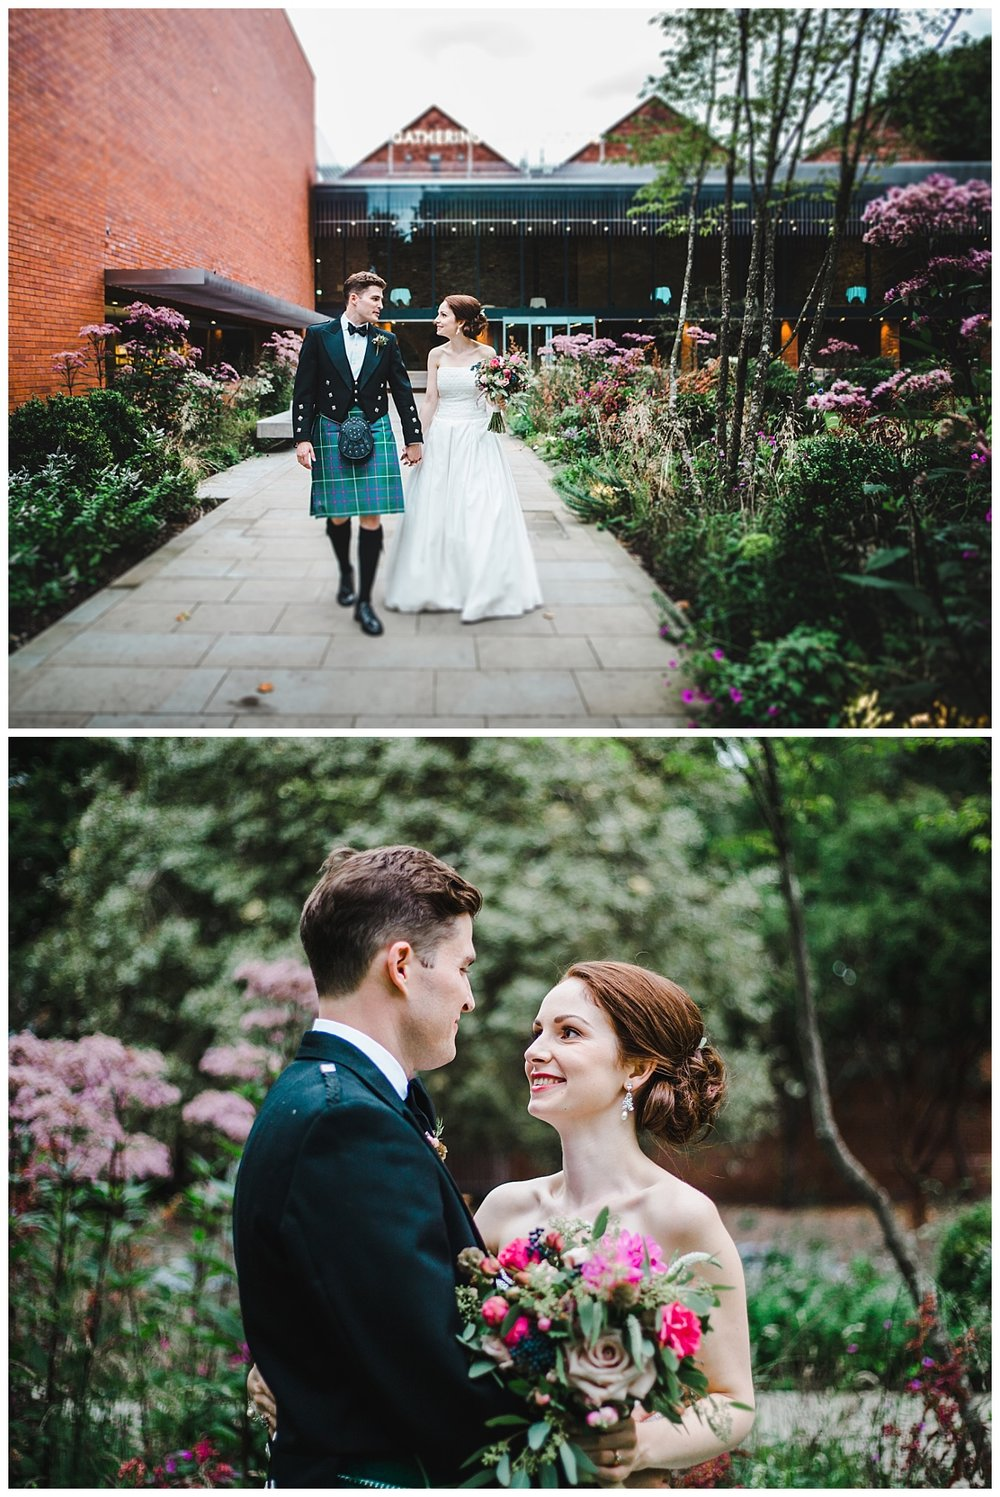 modern and relaxed images of the bride and groom at the Whitworth Art Gallery